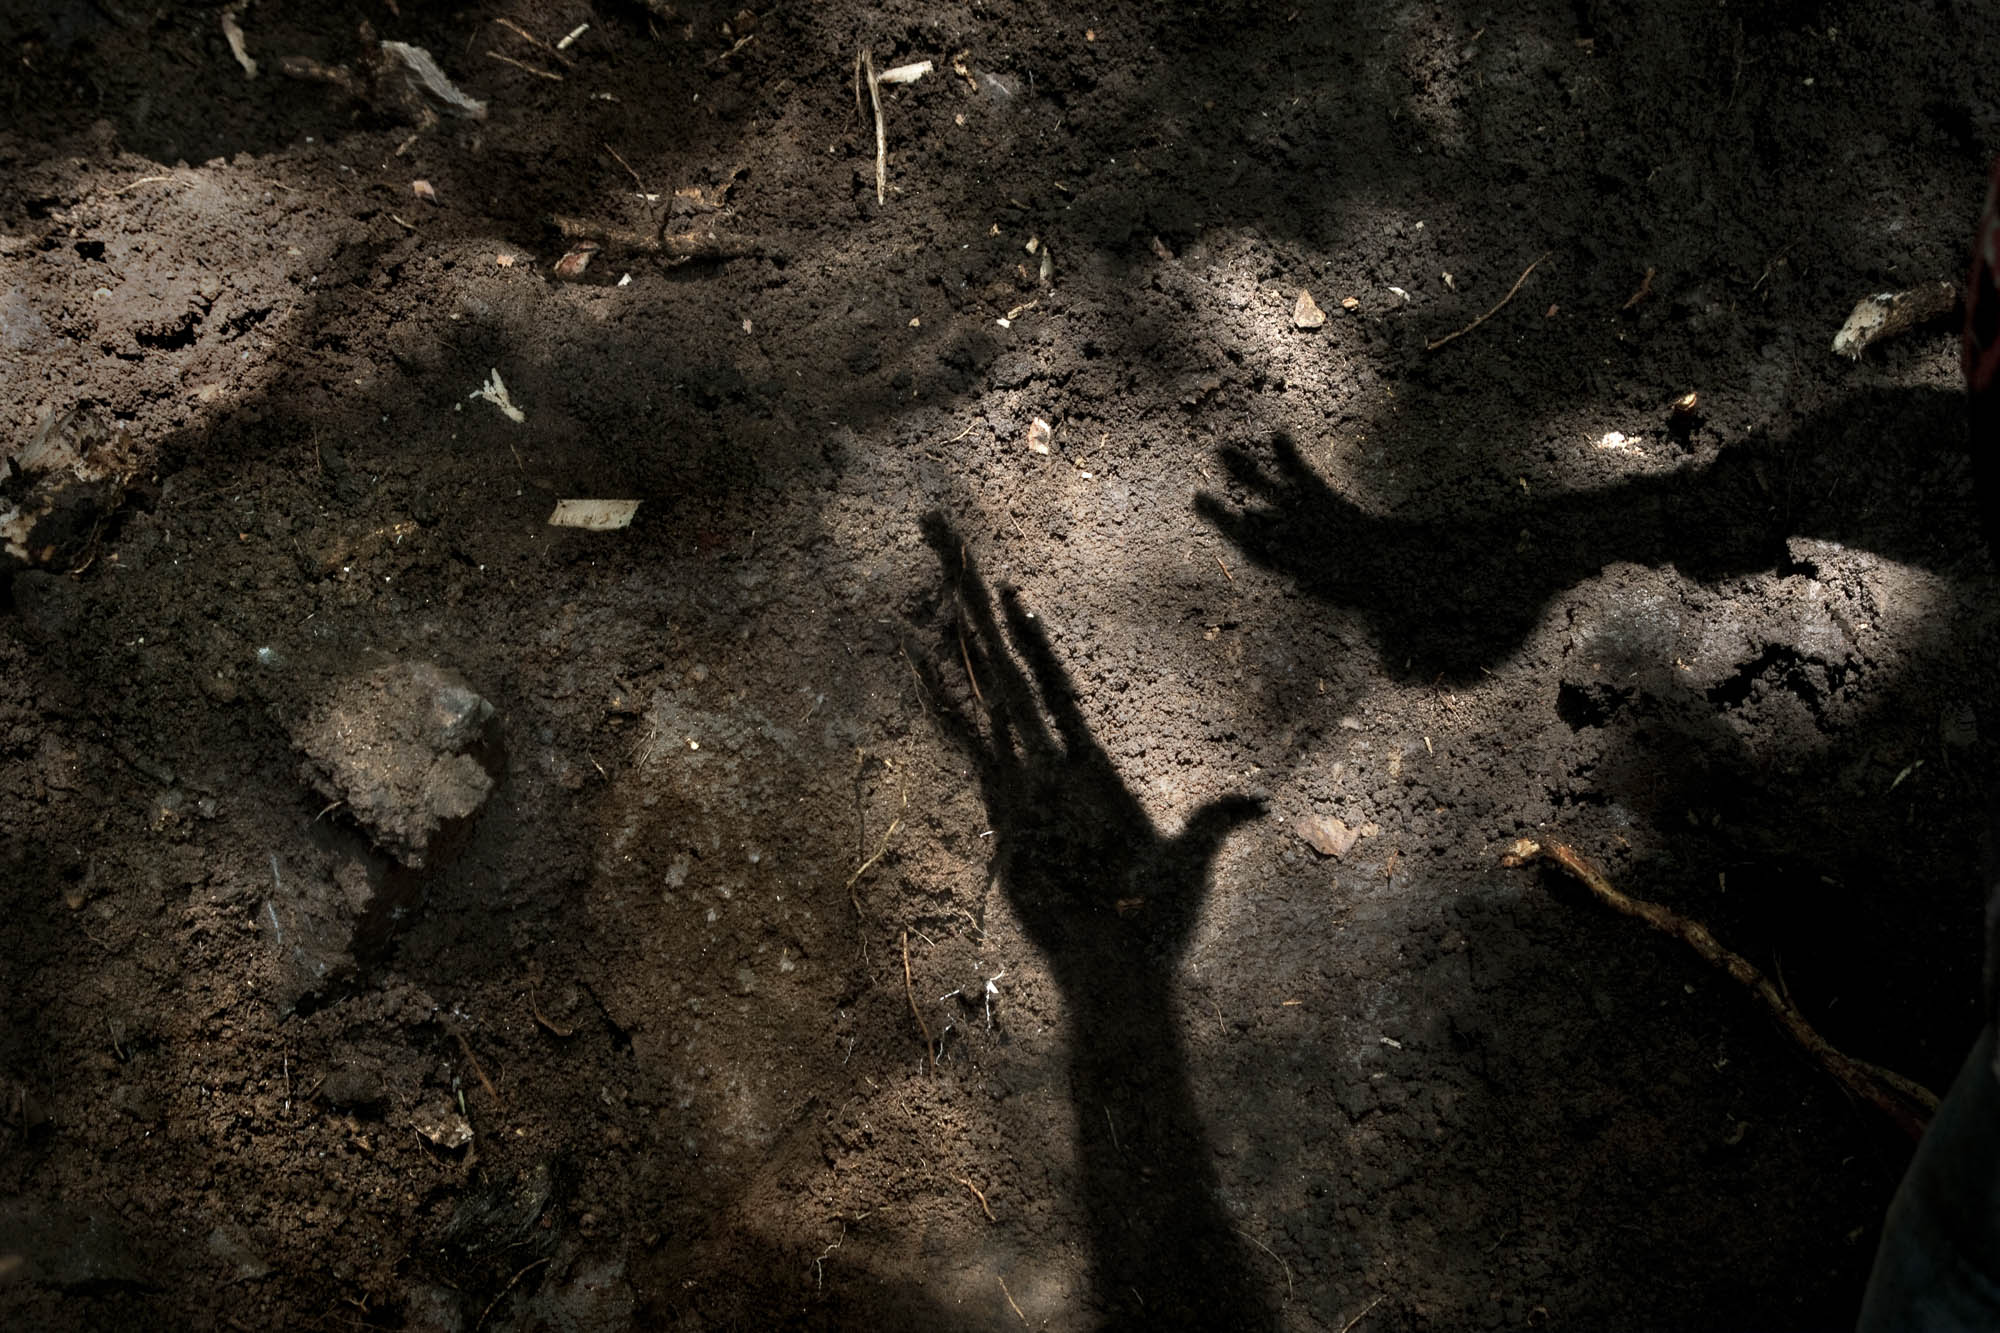 Israel projects his hands in the ground where he plans to dig searching for the body of William.